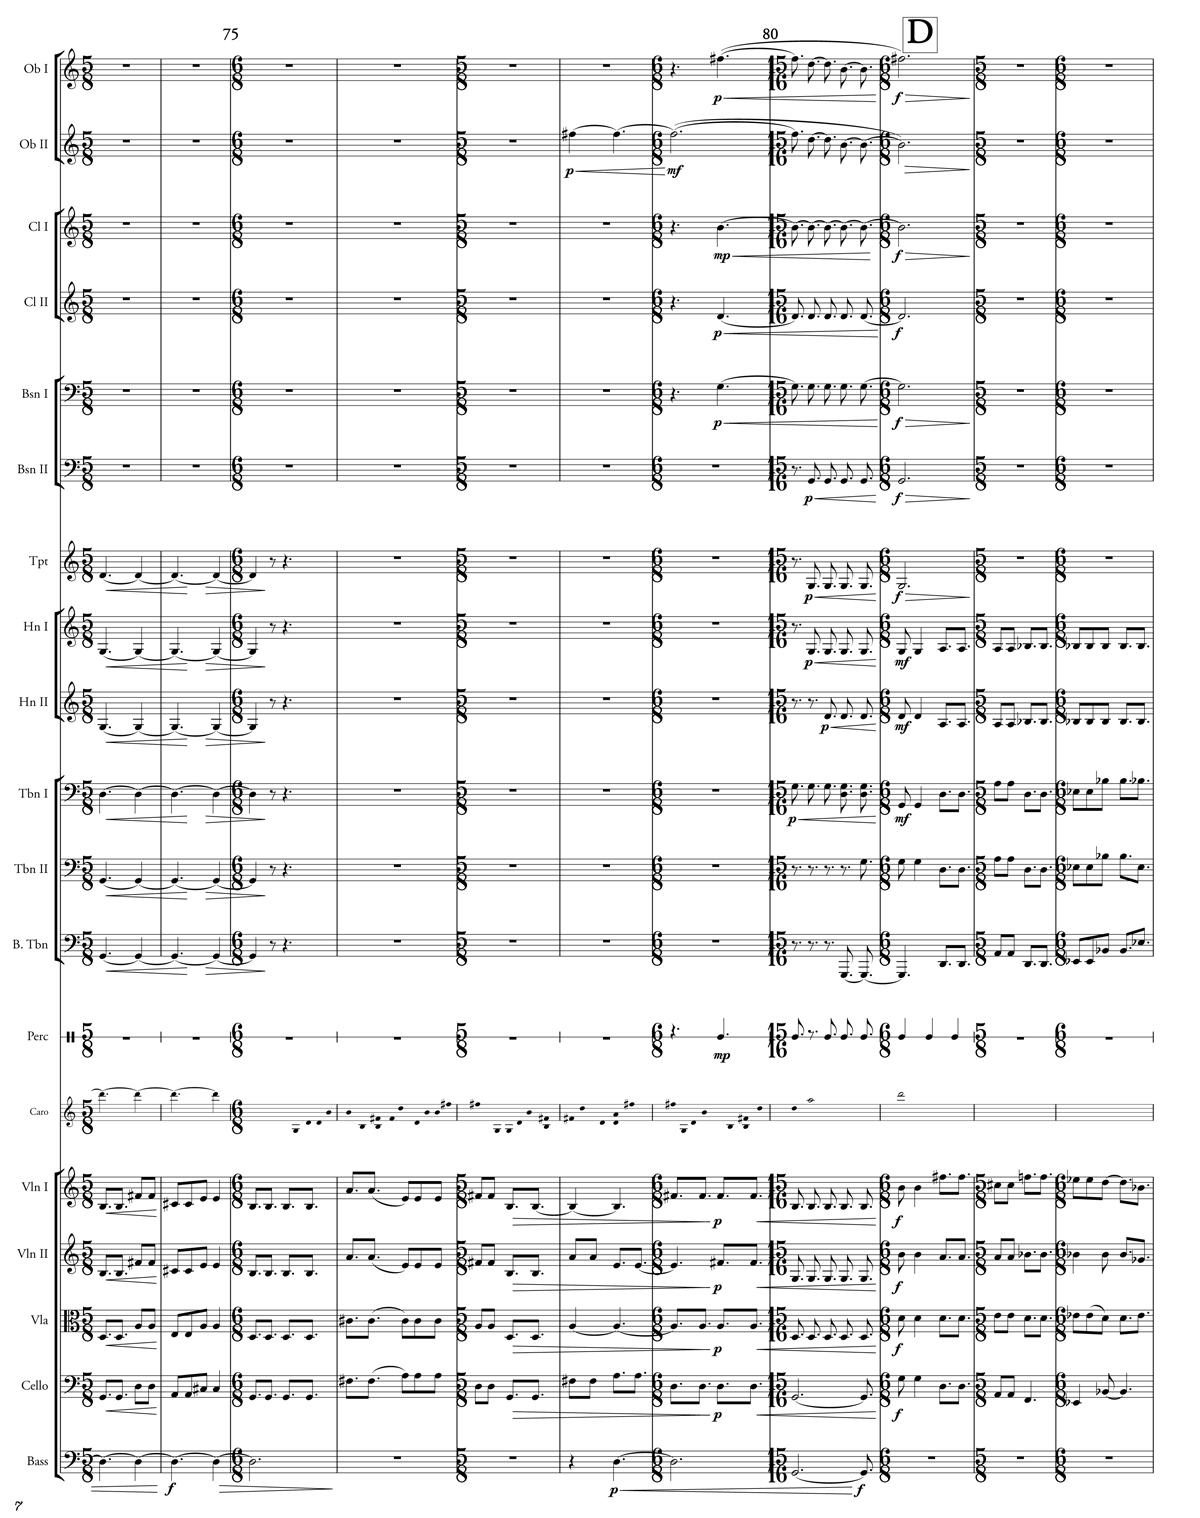 A passage from Caroline Shaw's orchestral score for Lo